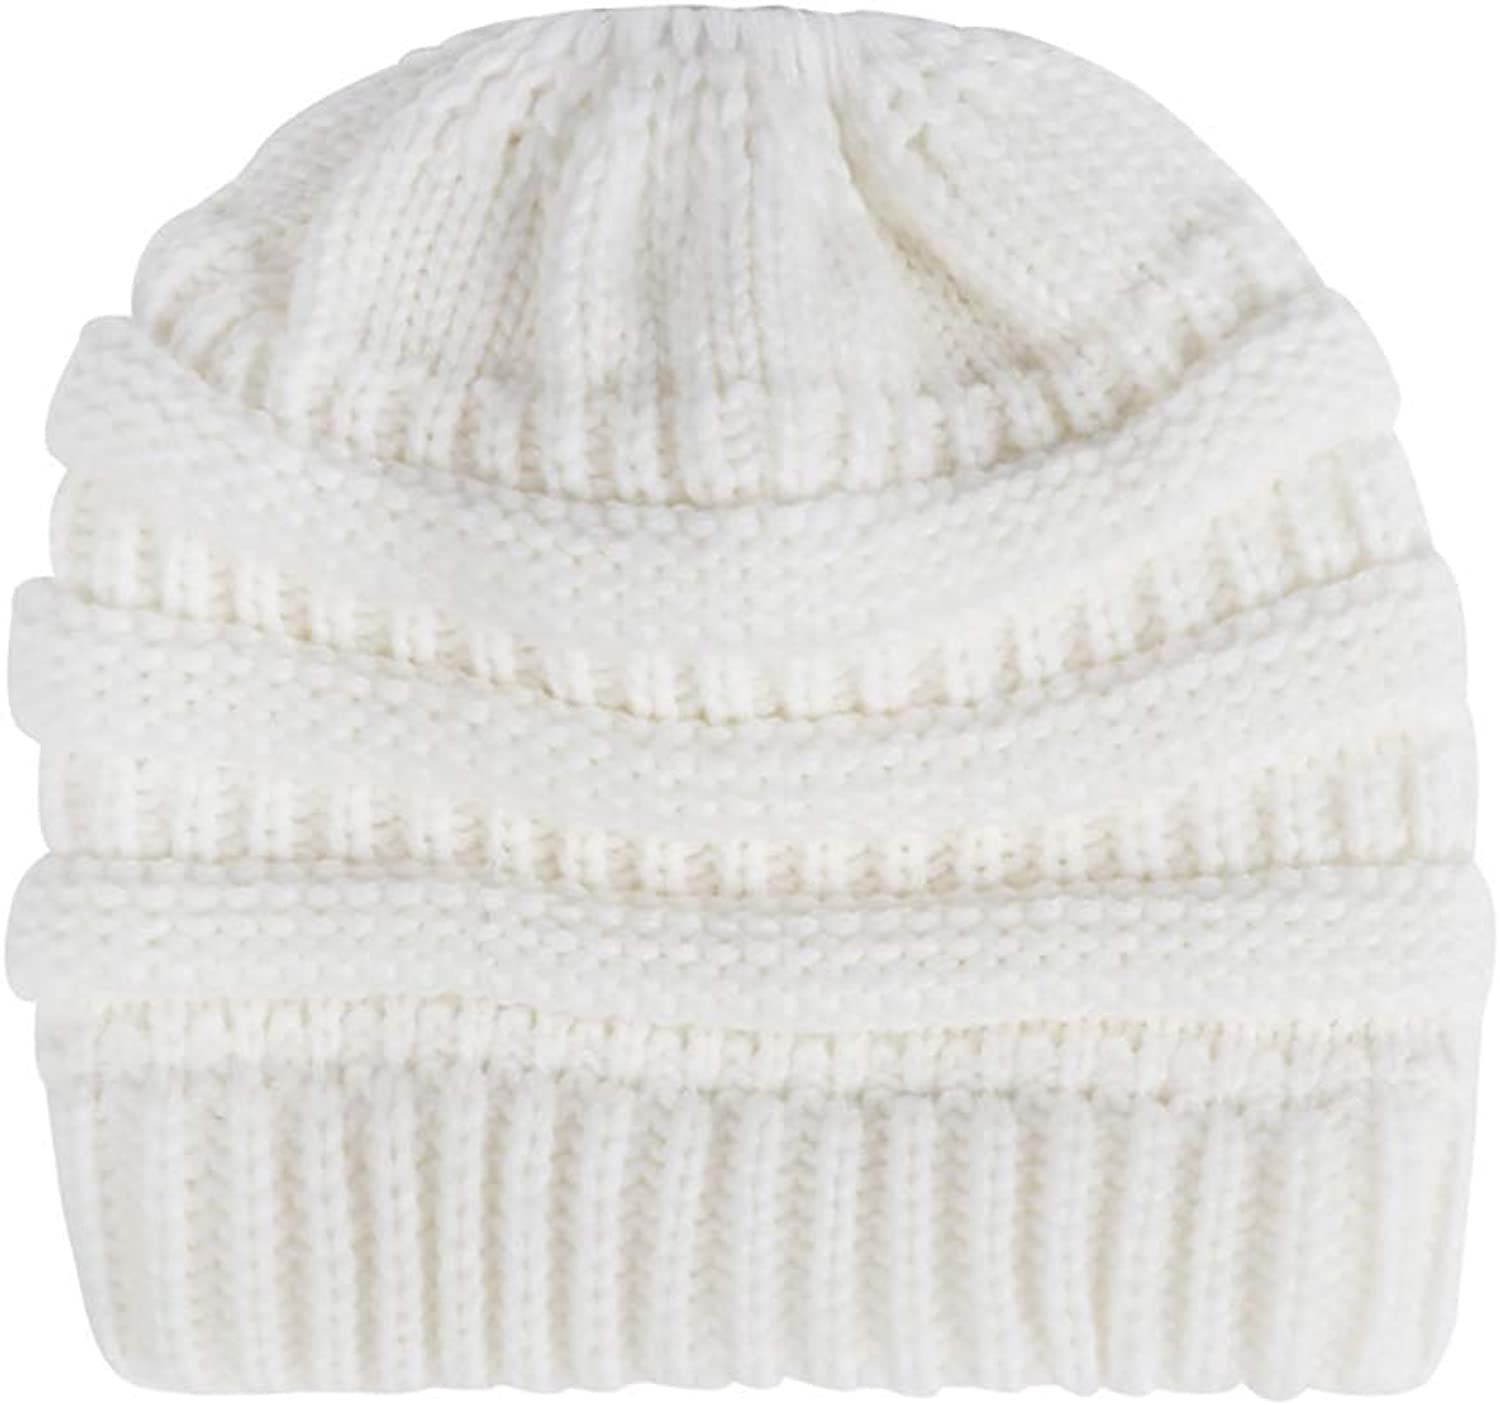 BABYHYY Womens Girls Winter Warm Messy Bun Ponytail Hole Ski Knit Beanies Skull Cap